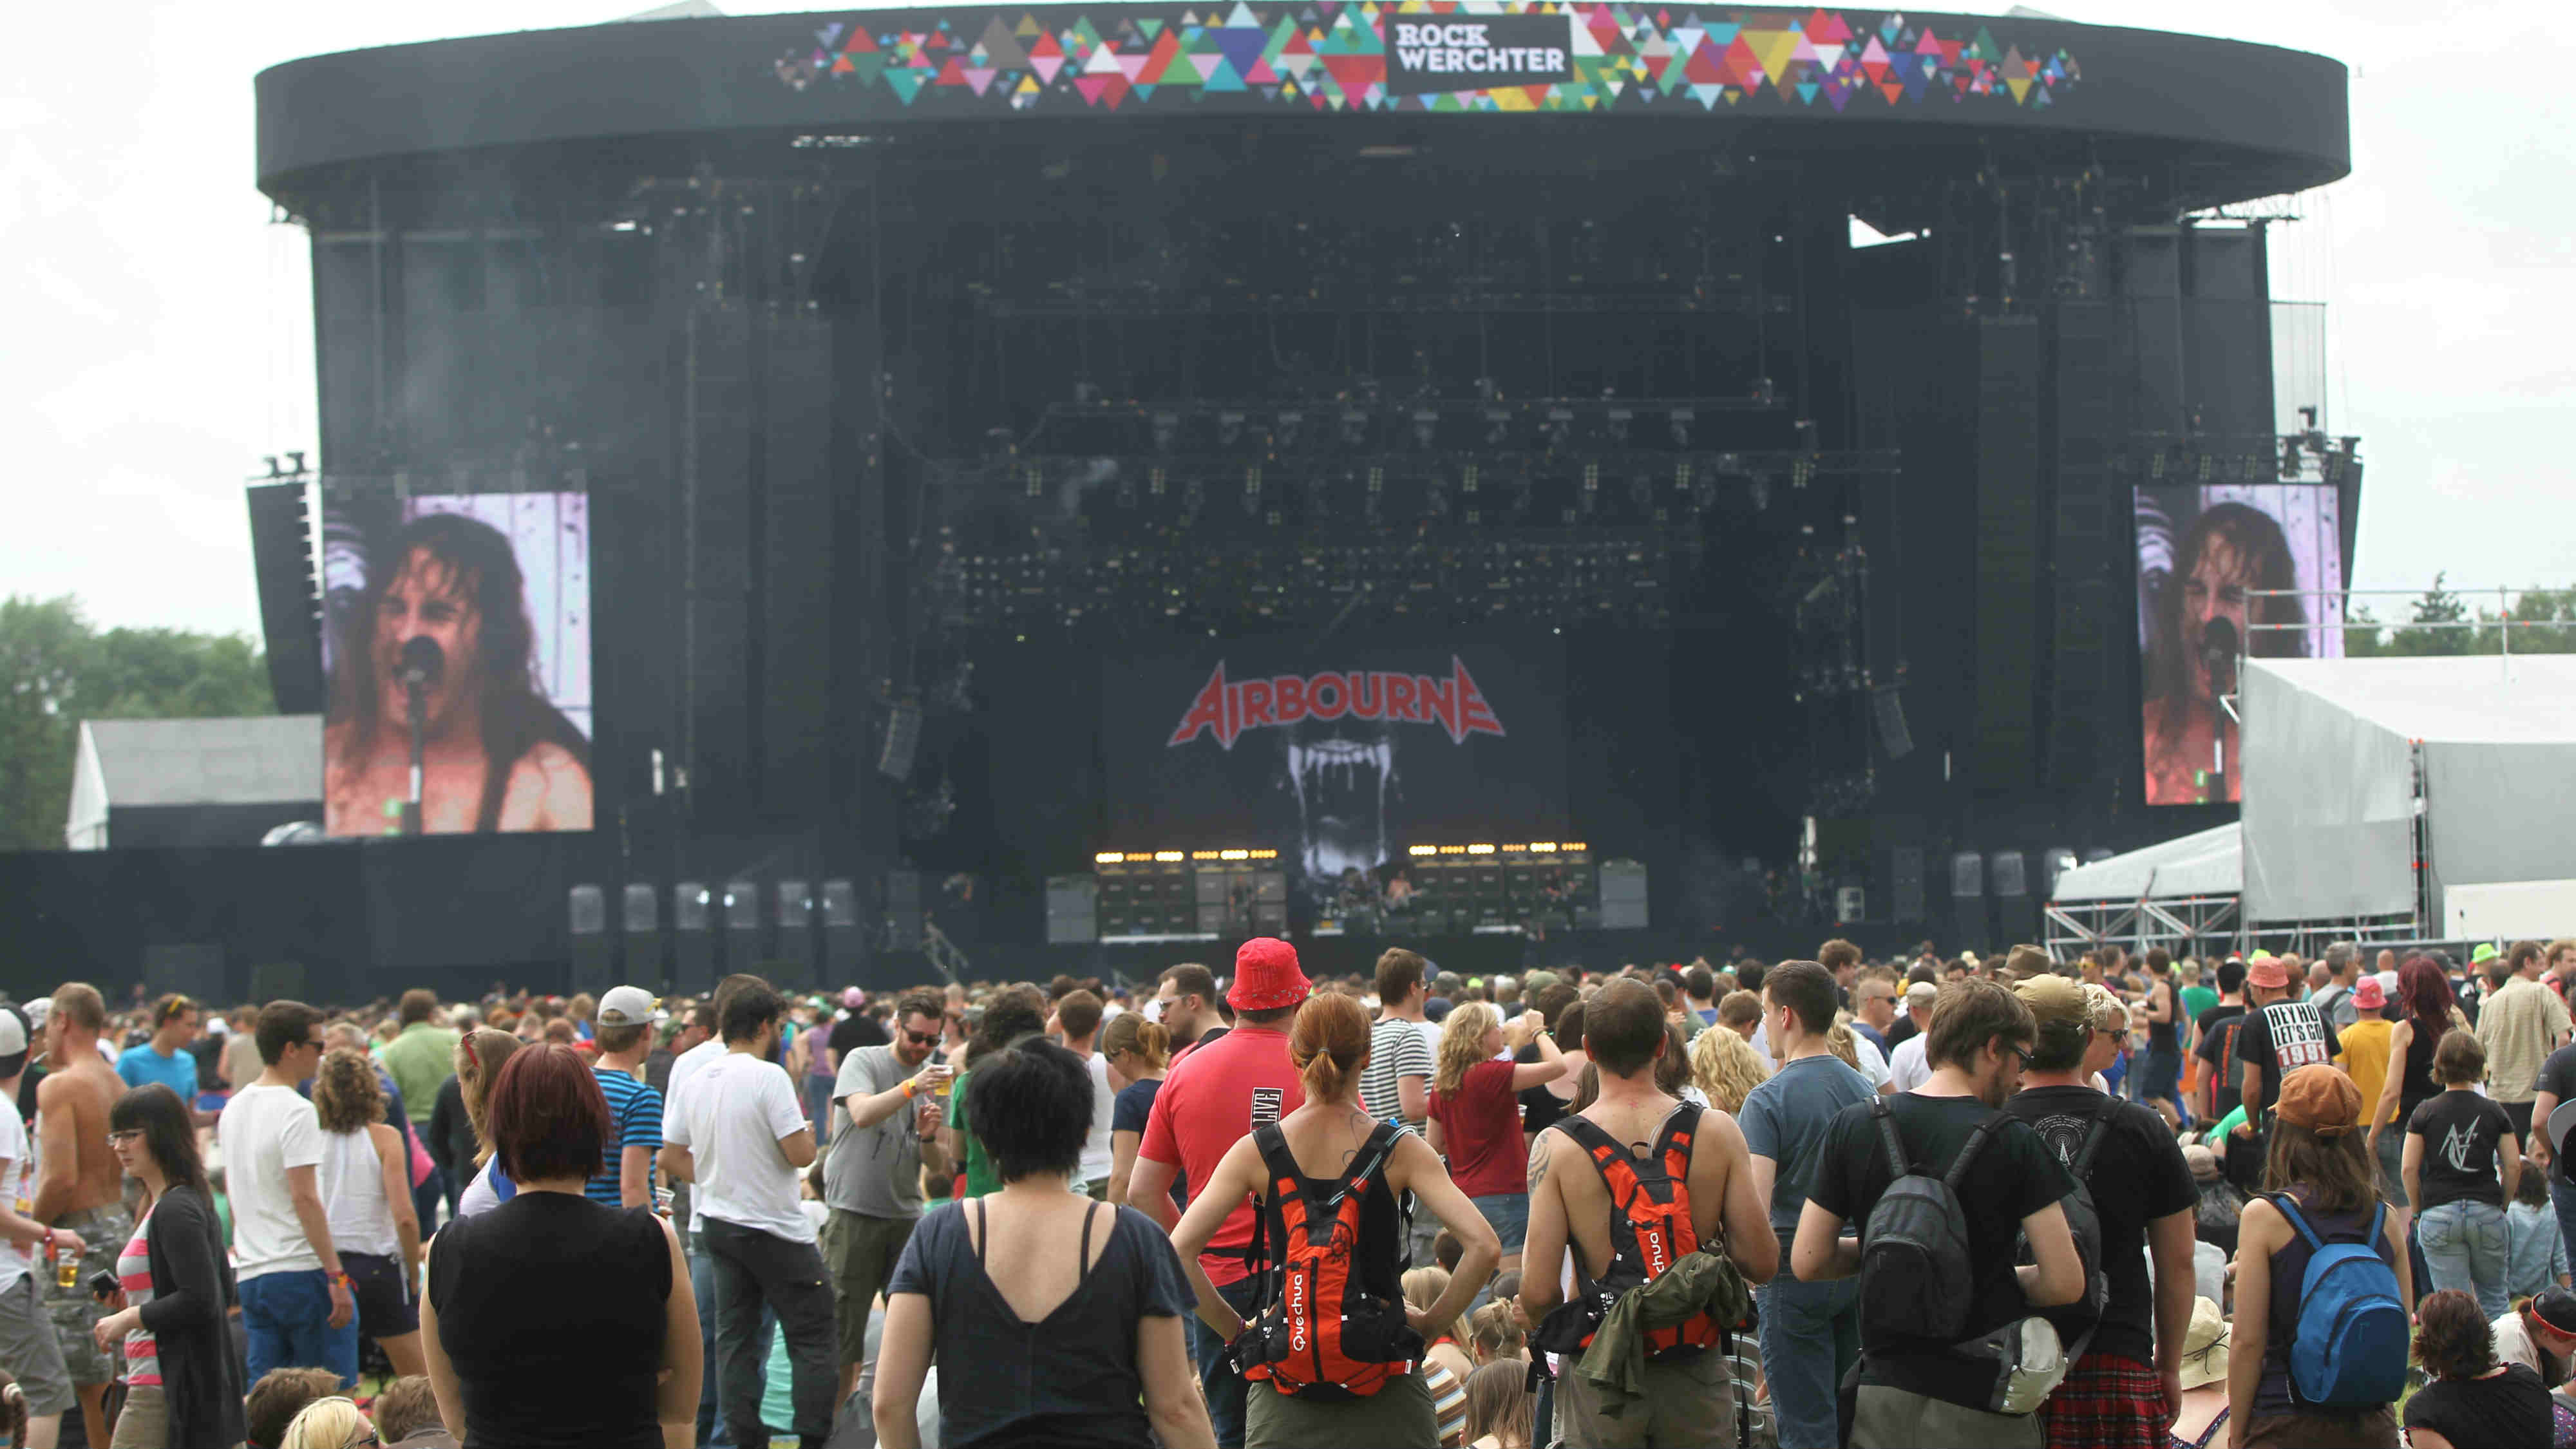 Rock Werchter 2015 HD Wallpapers Hd Wallpapers 4000x2250